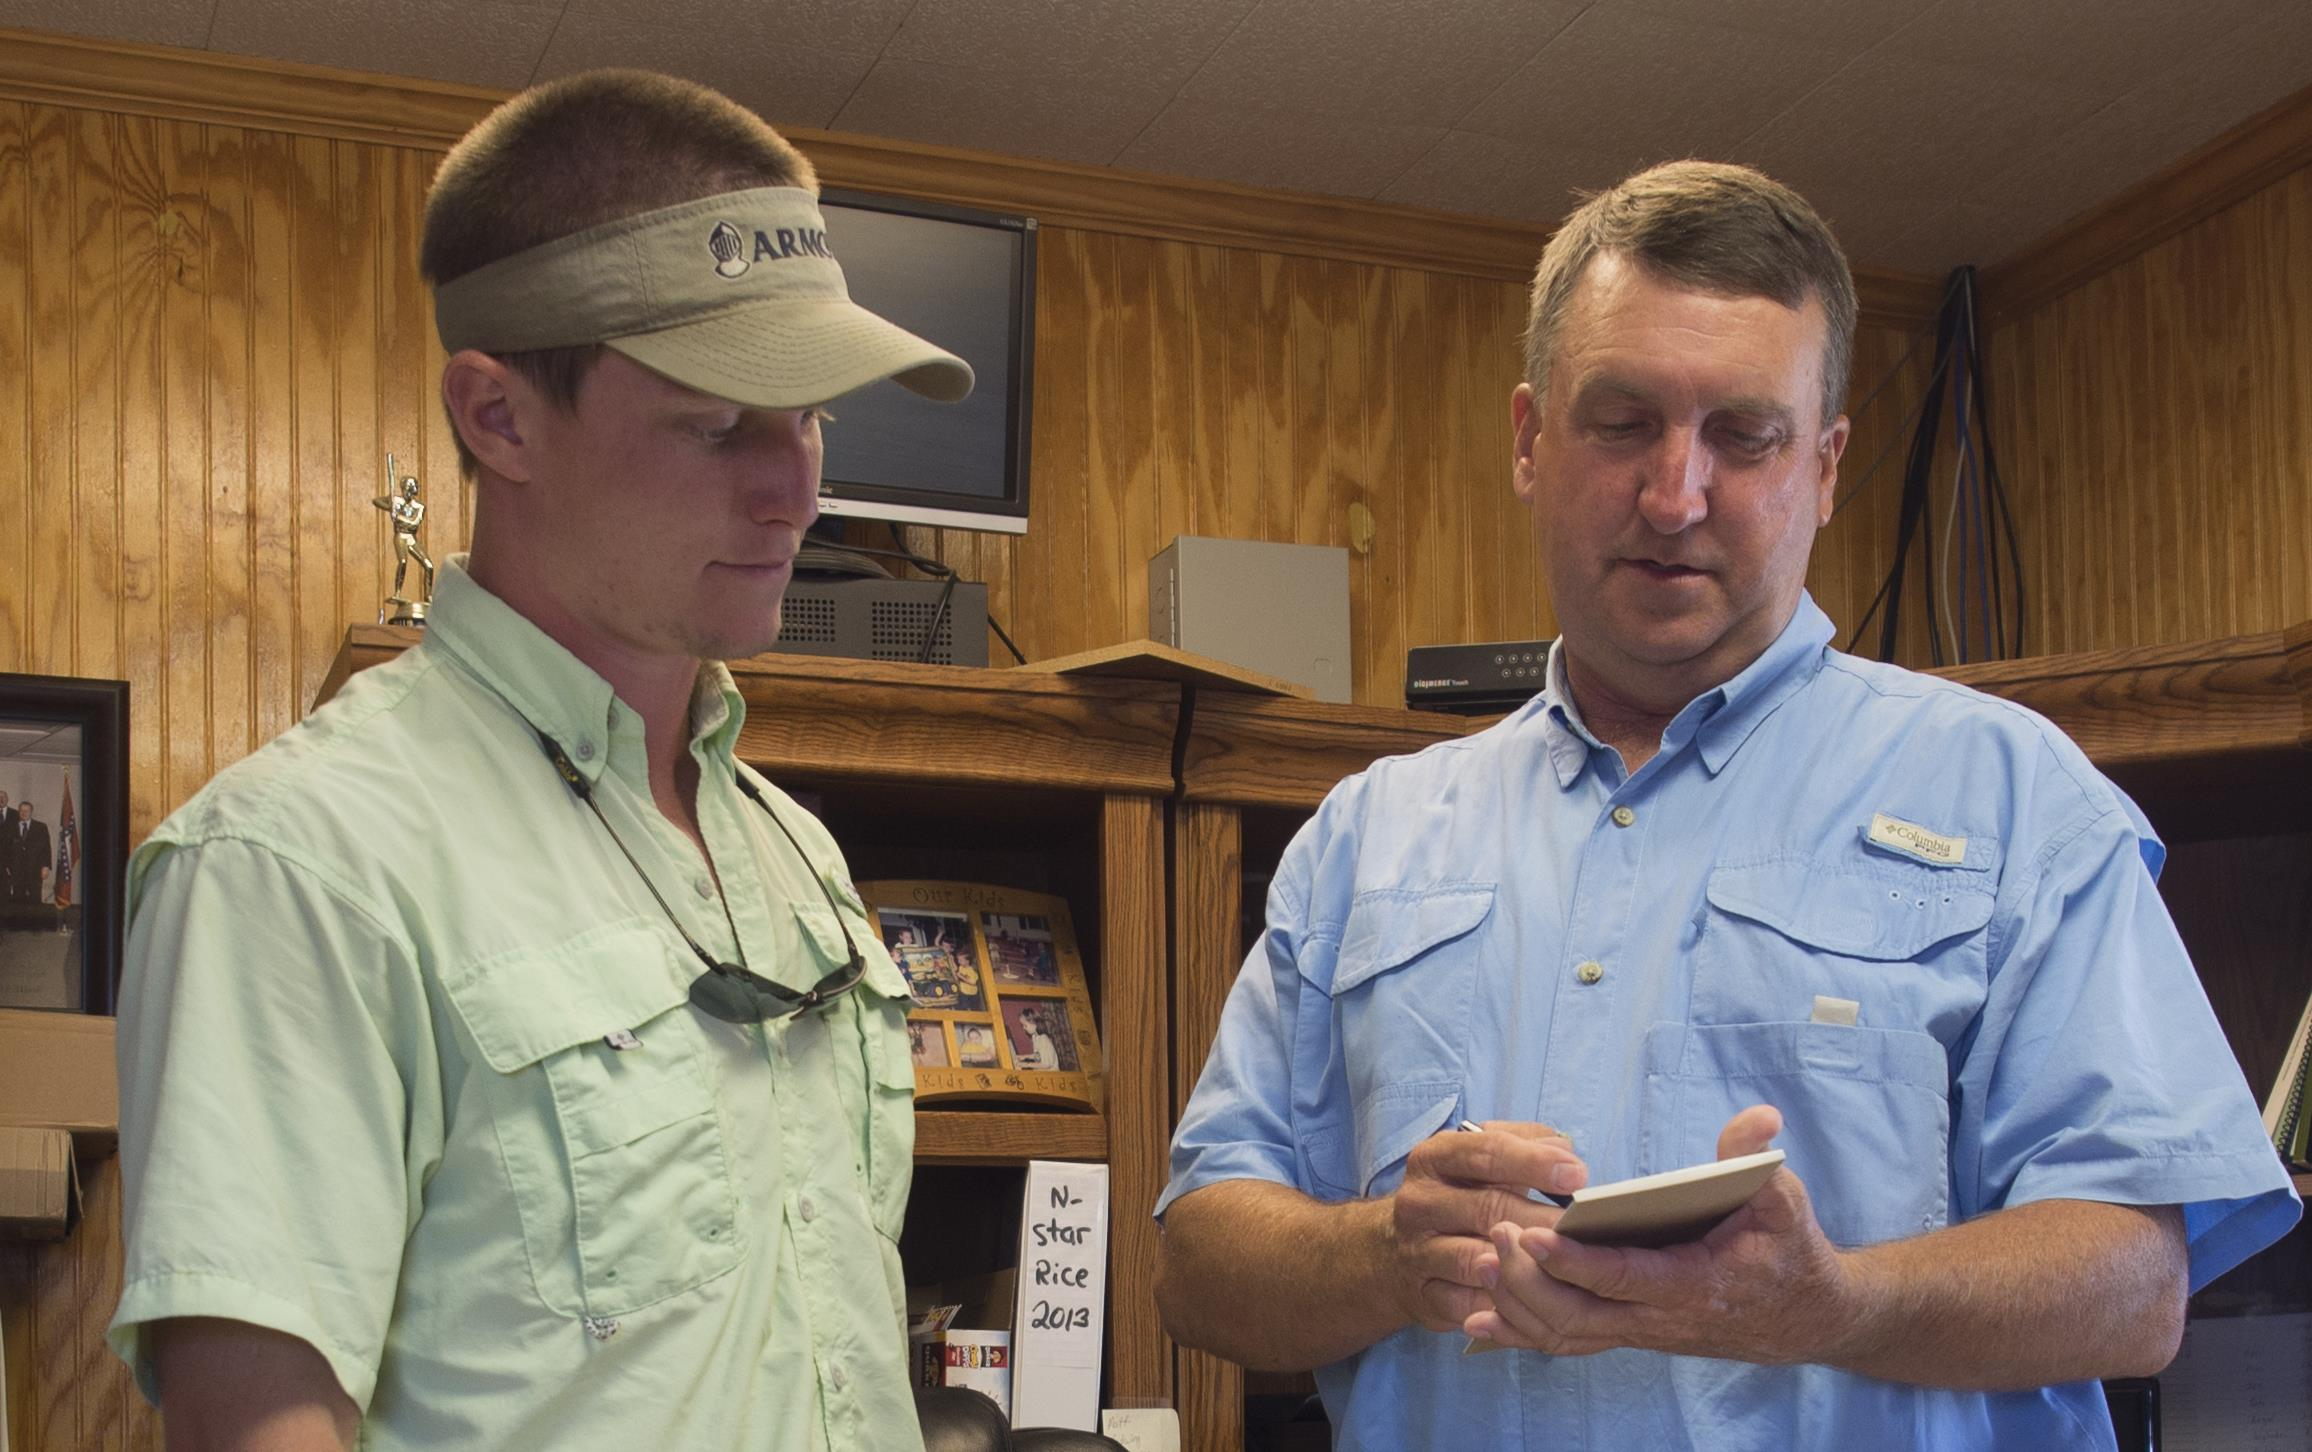 Two men dressed in casual shirts and pants stand next to desk in wood paneled office, checking details on a pad of paper